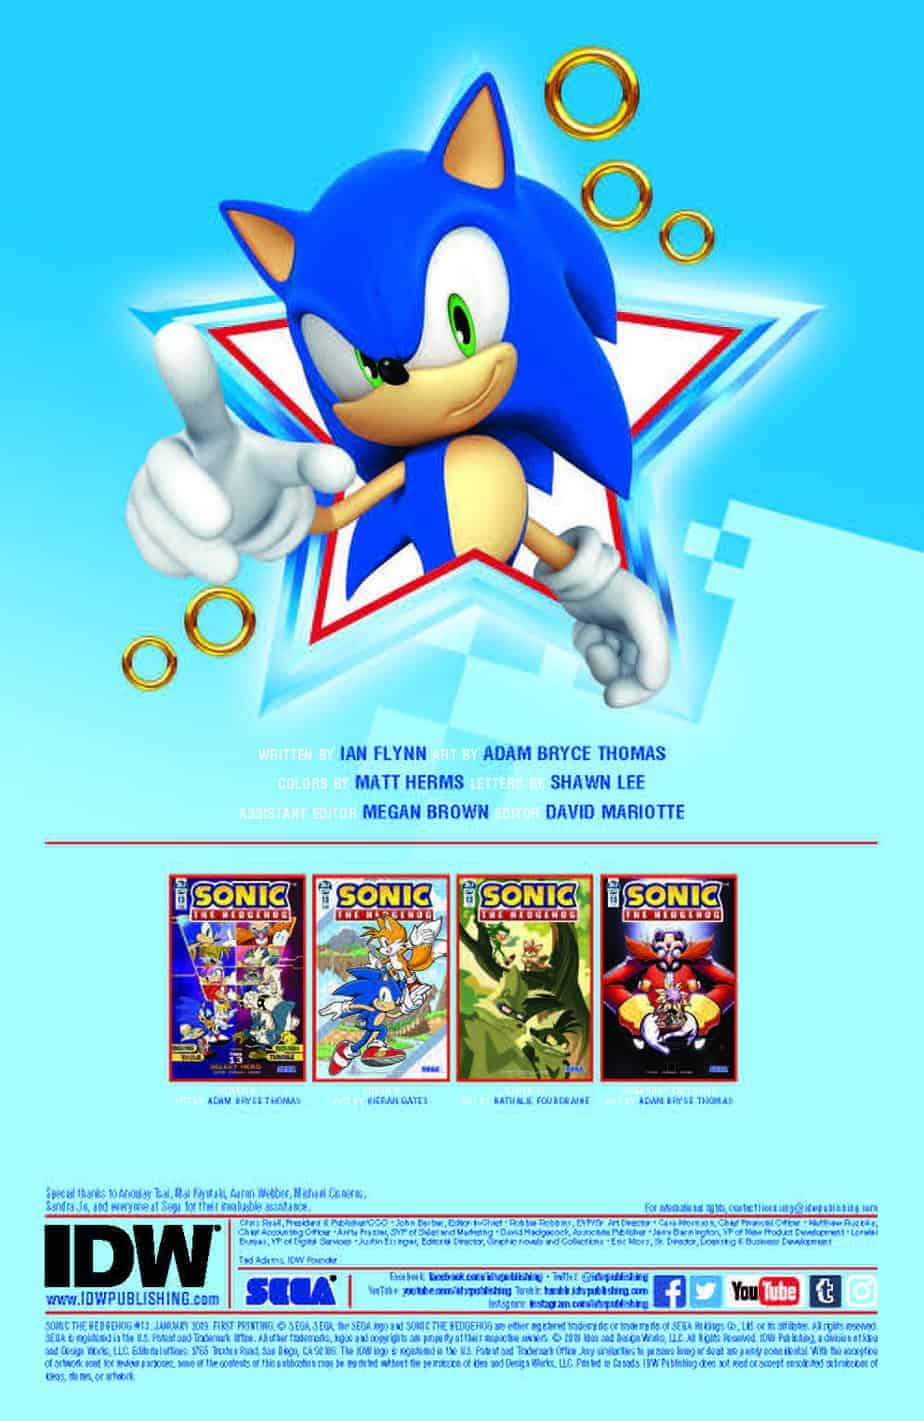 Sonic the Hedgehog #13 – preview page 1